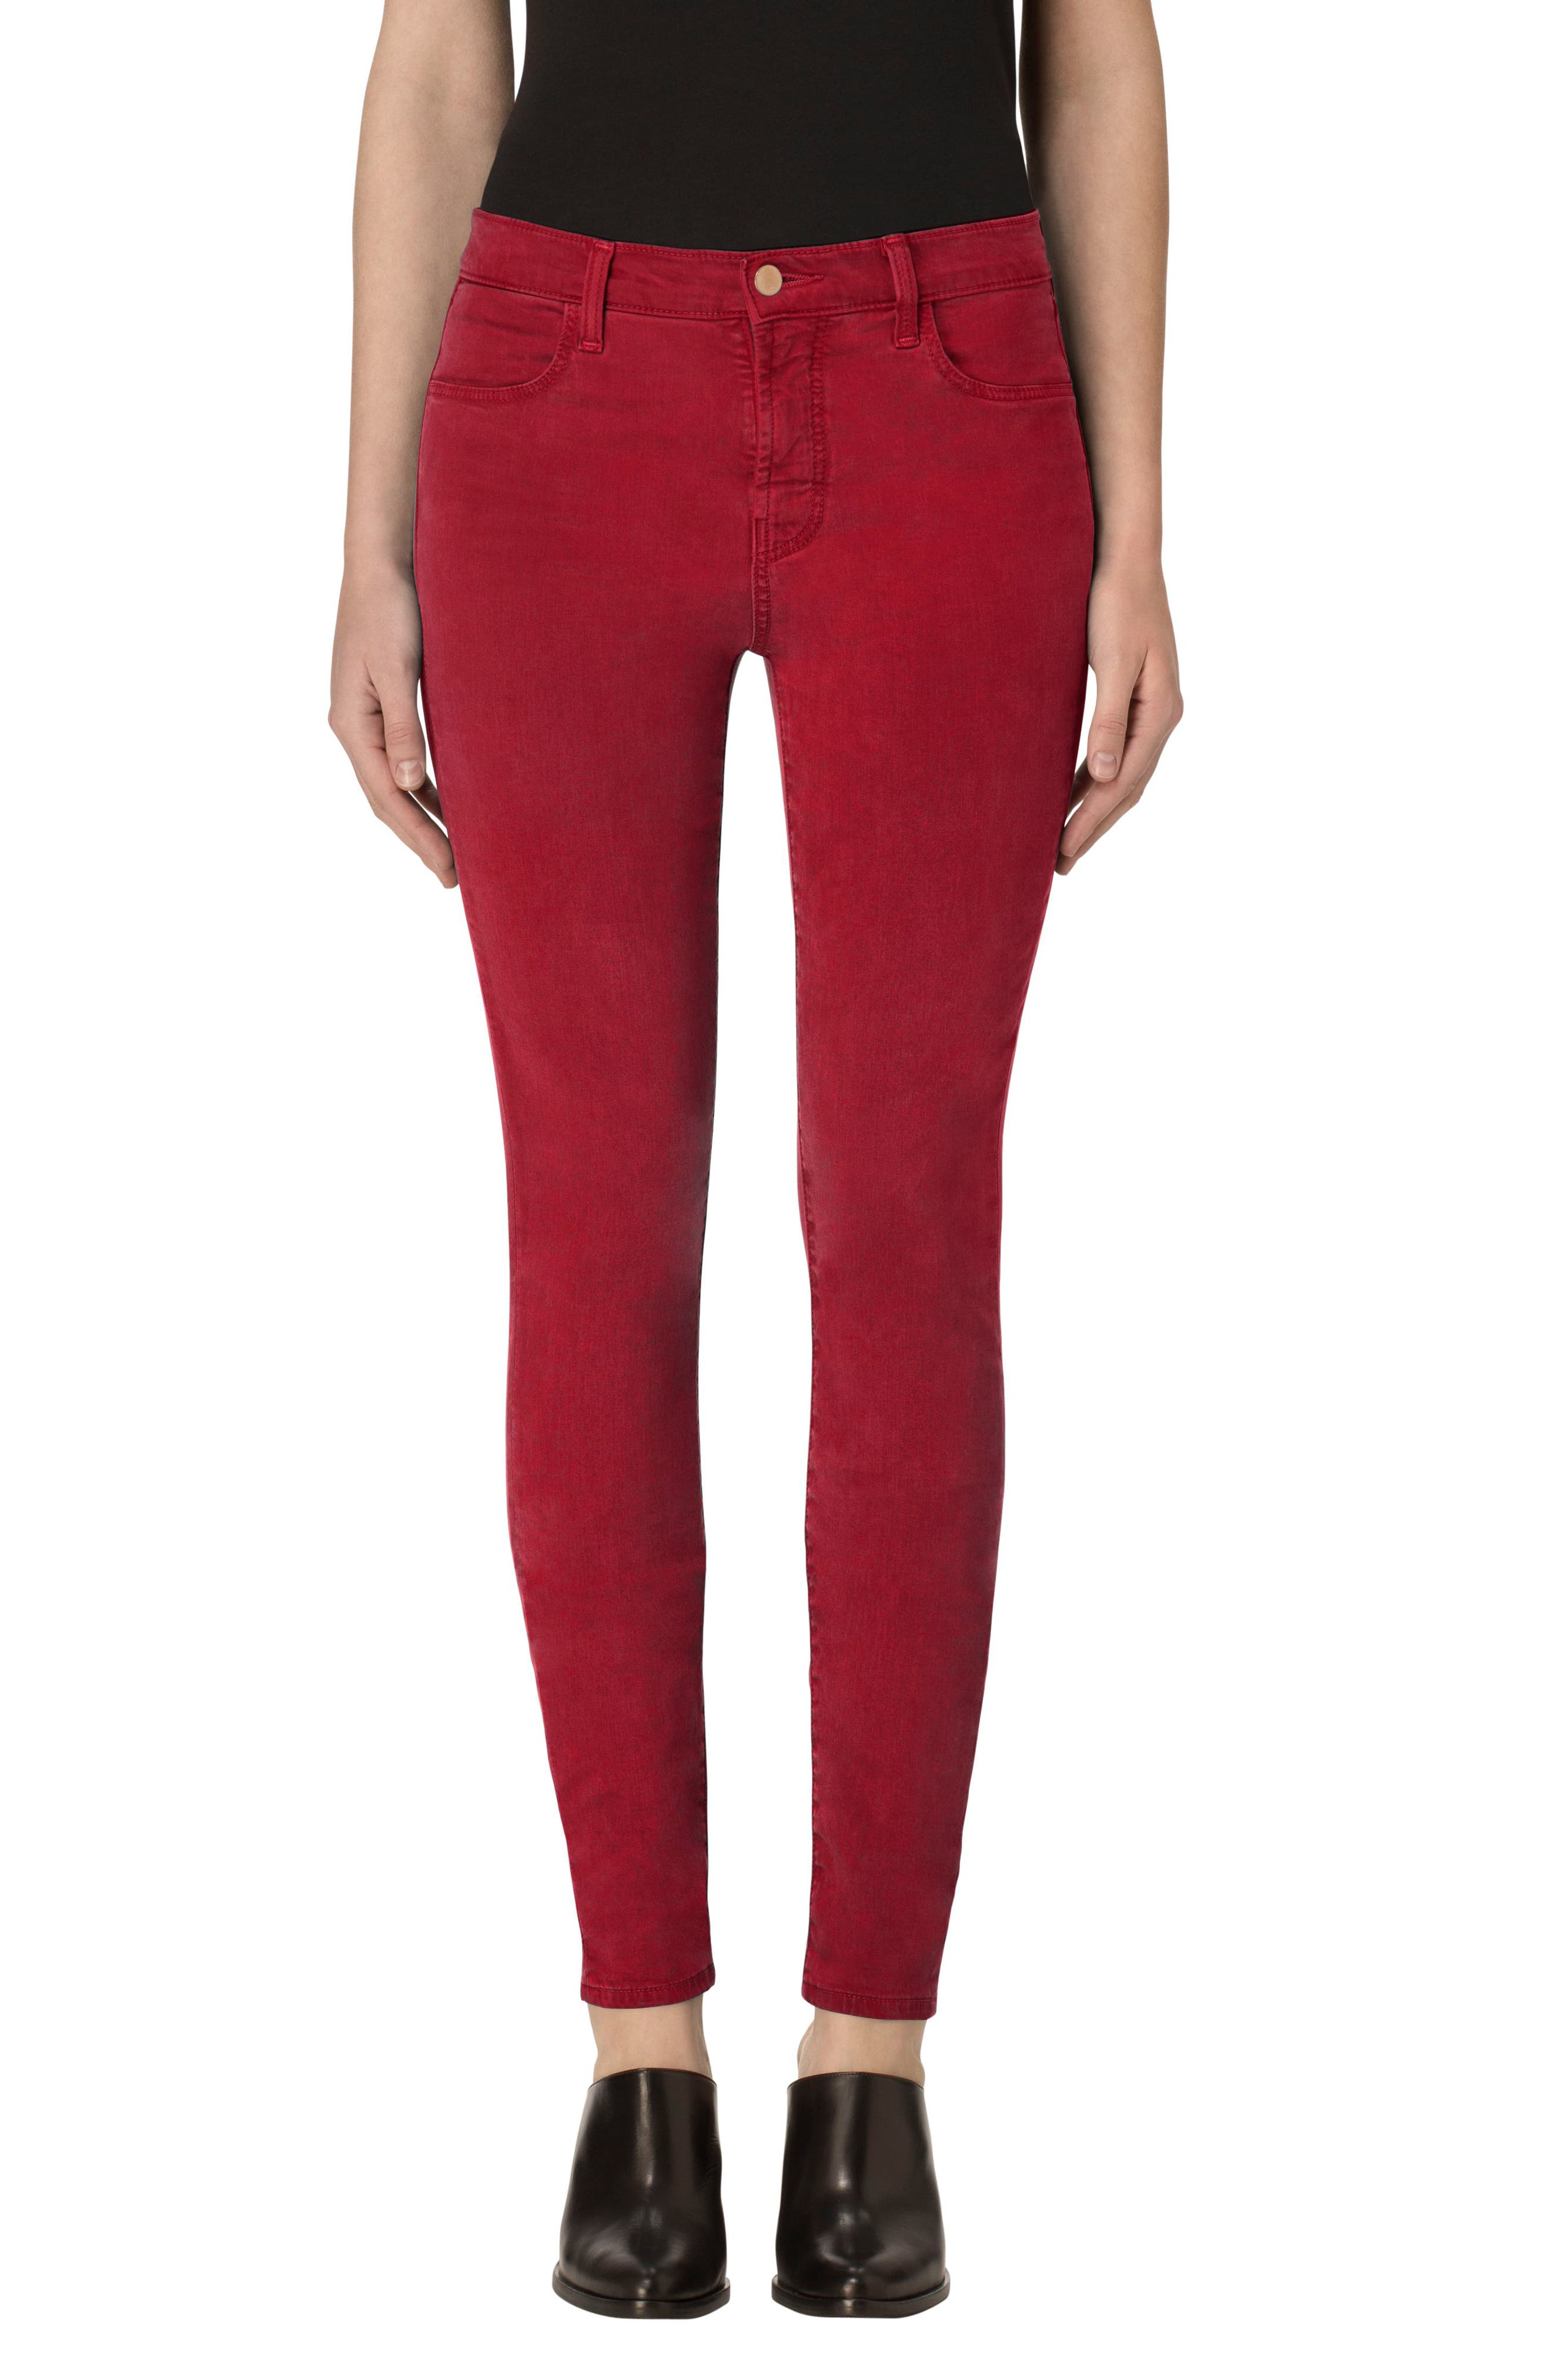 Alternate Image 1 Selected - J Brand High Waist Ankle Super Skinny Jeans